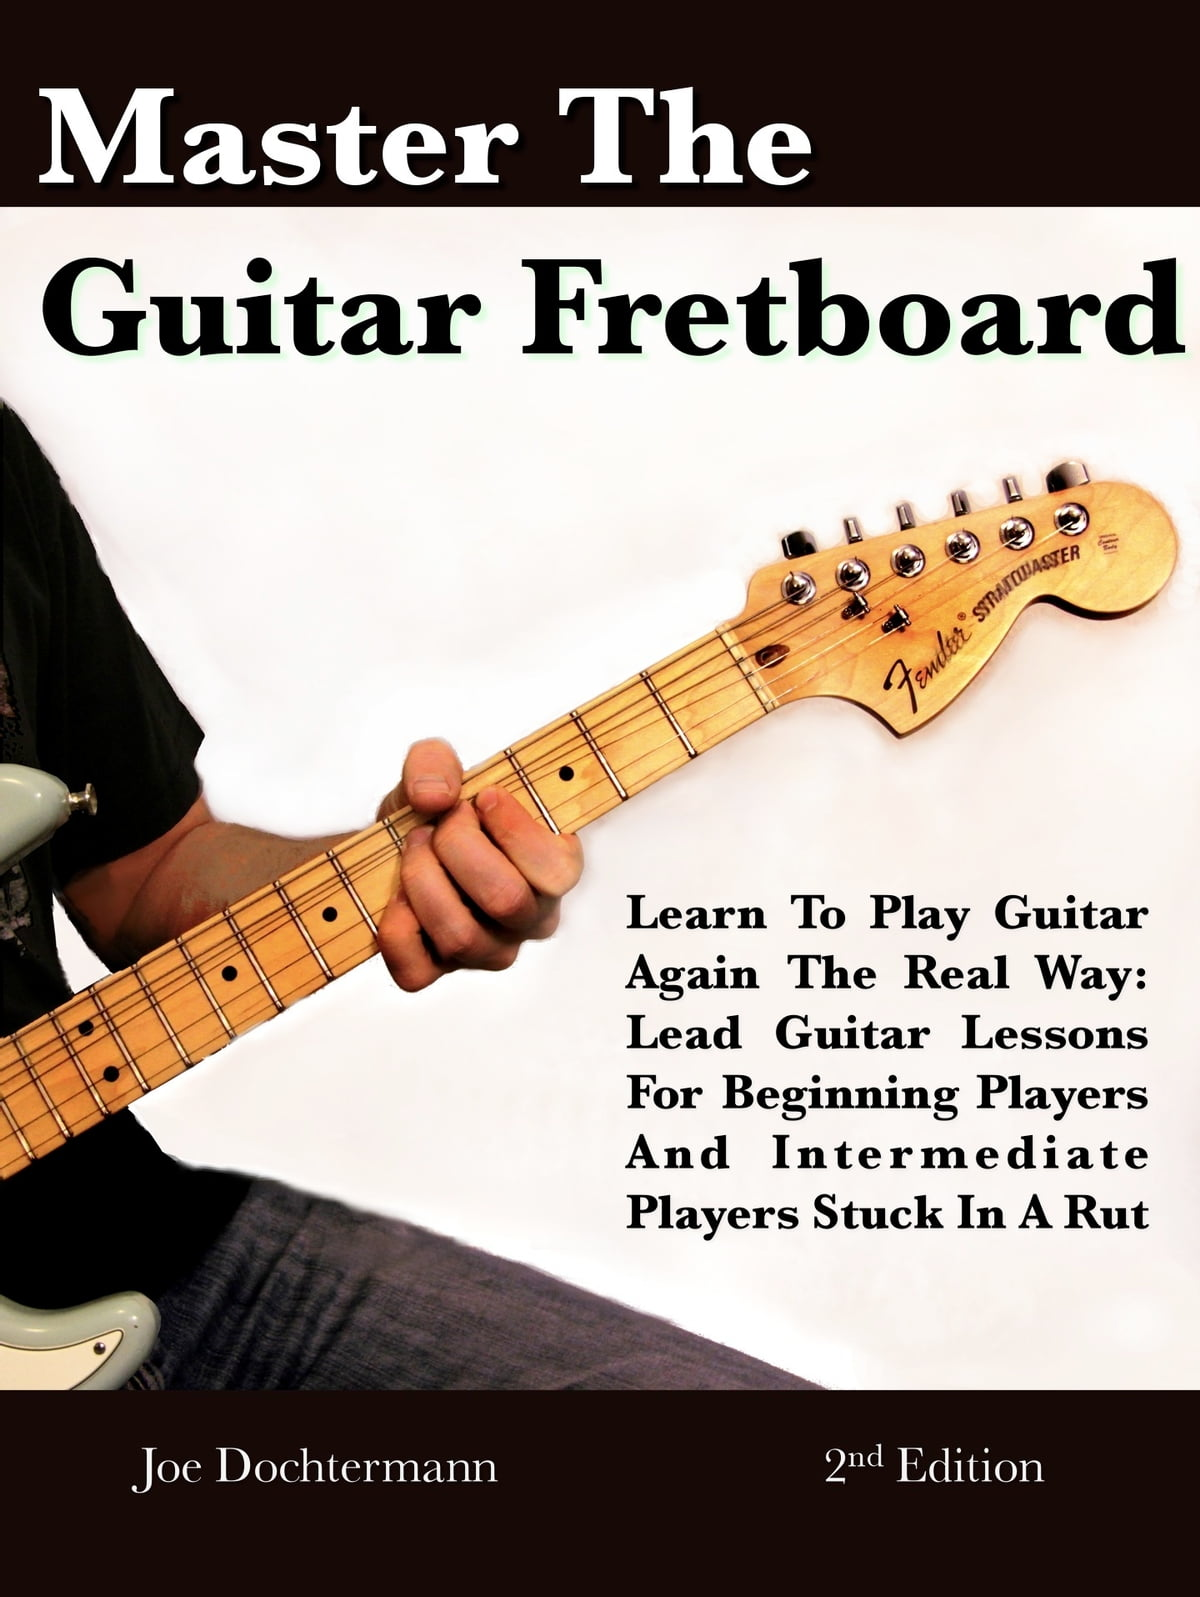 master the guitar fretboard learn to play the guitar again the real way lead guitar lessons. Black Bedroom Furniture Sets. Home Design Ideas